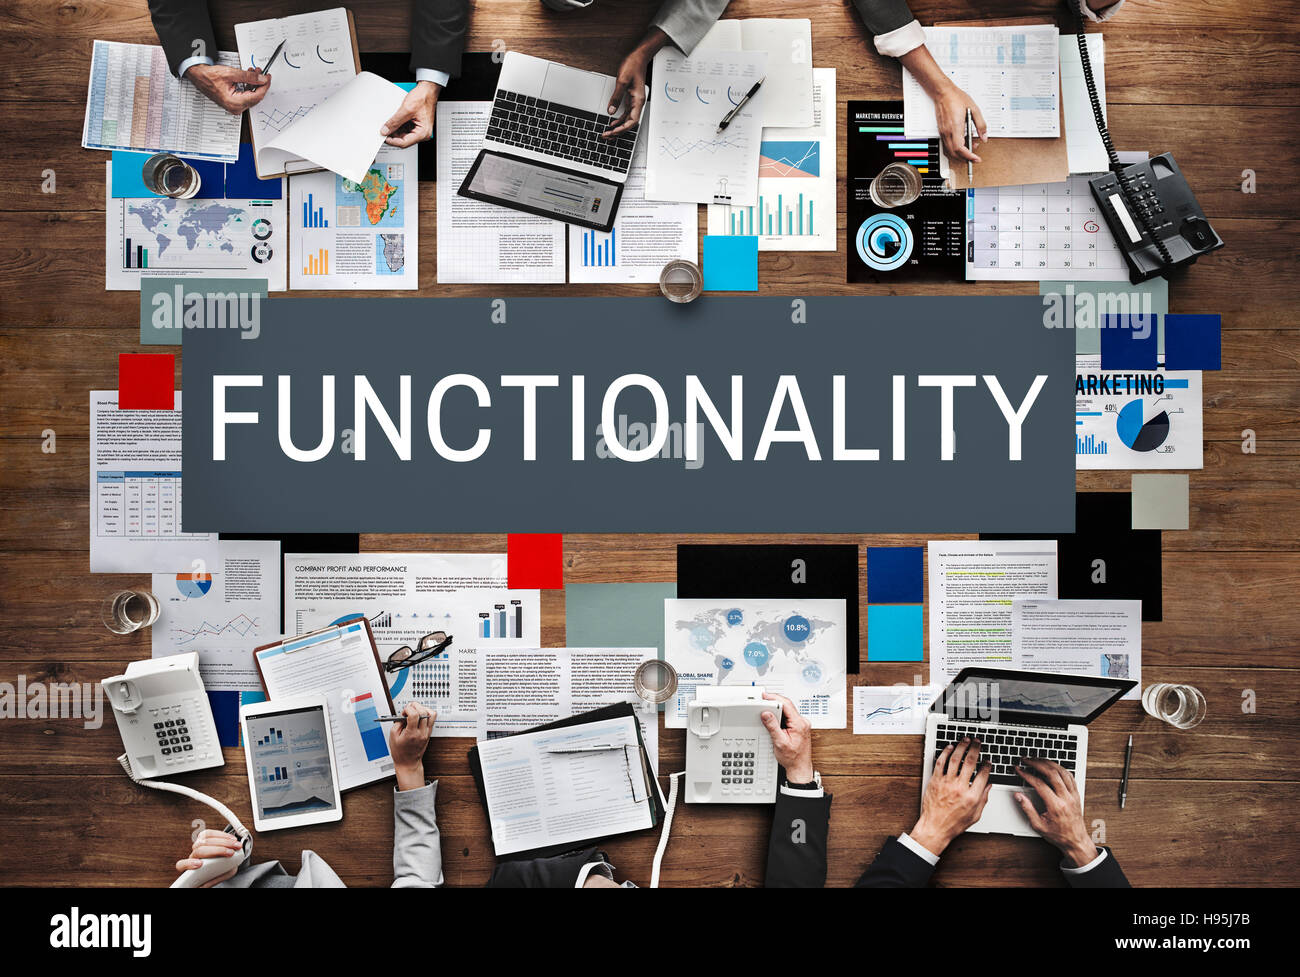 Functionality Digital Computer System Practical Concept Stock Photo